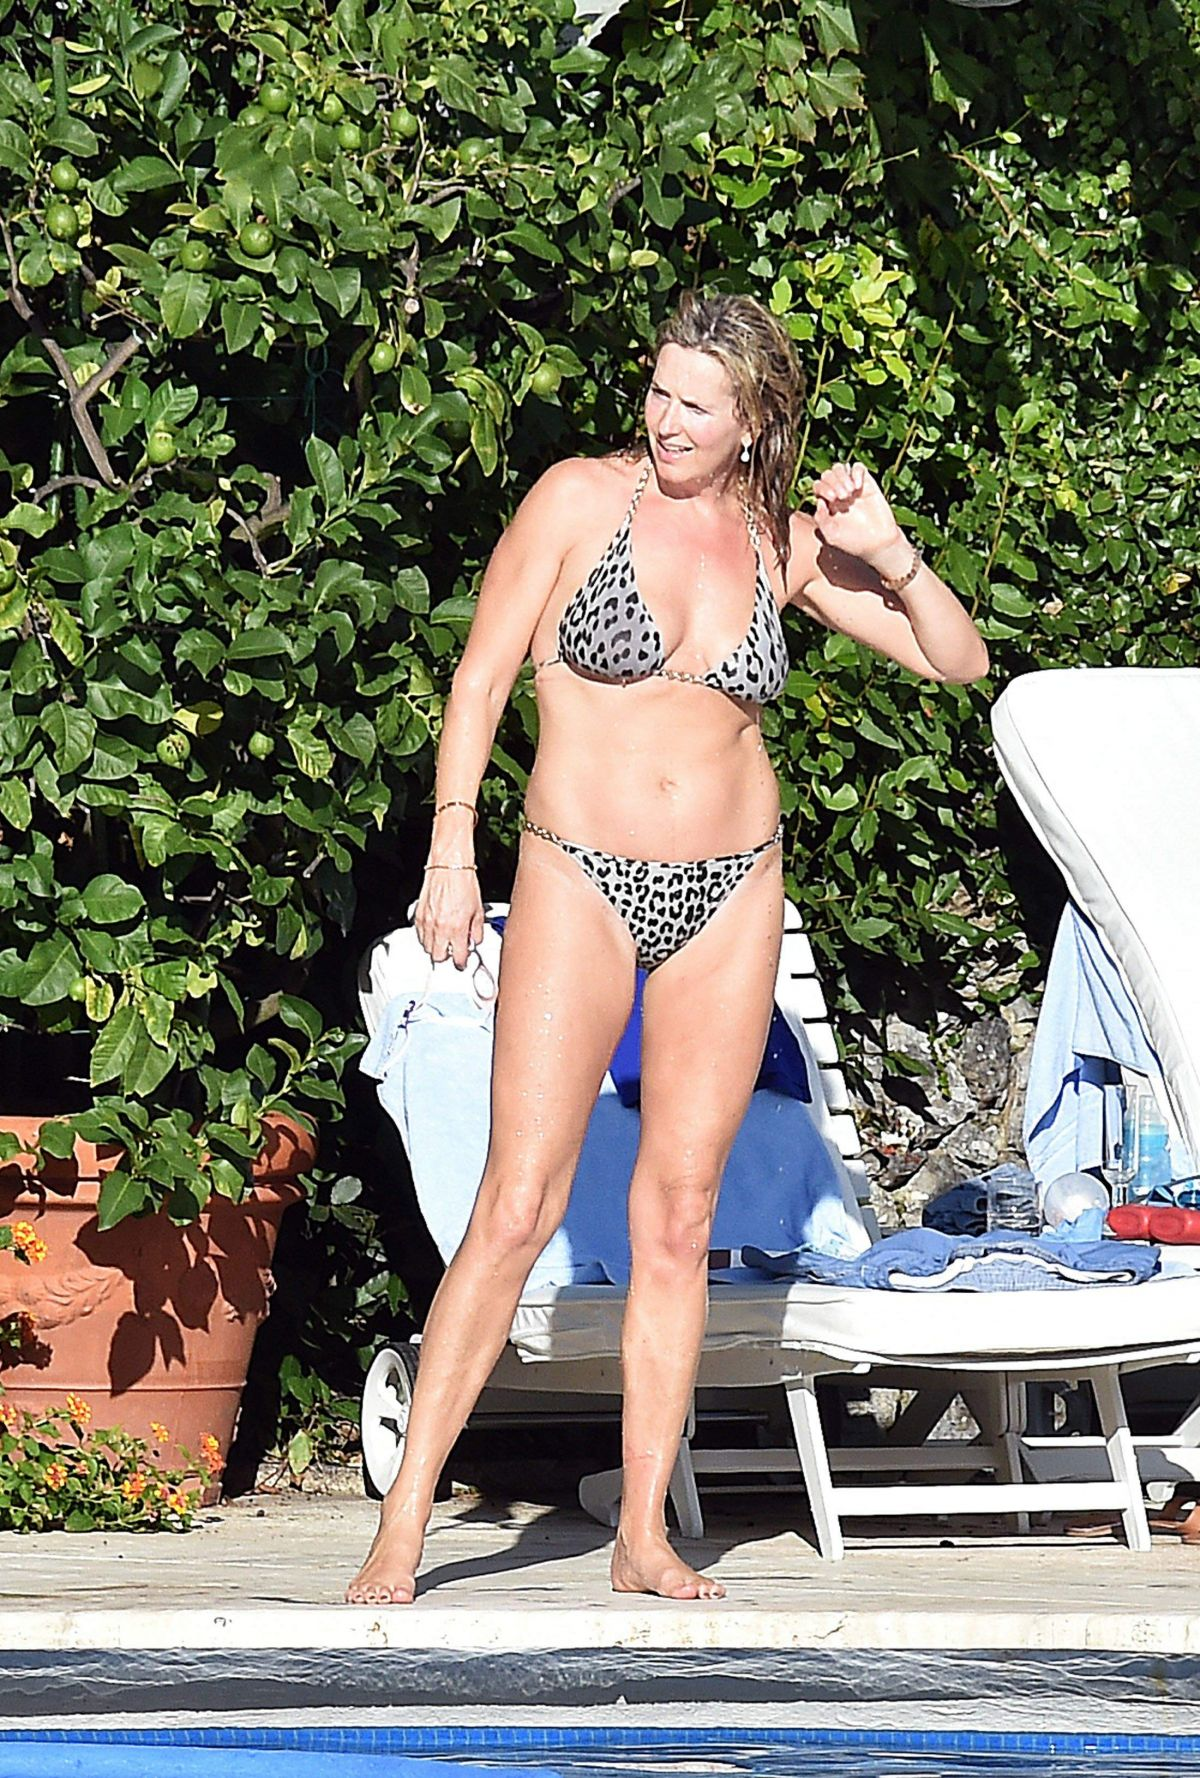 Wendy williams shows off slim figure in tiny bikini while vacationing in barbados